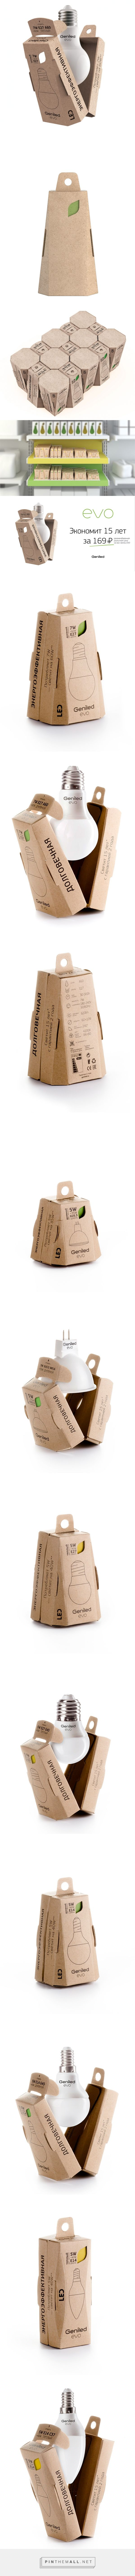 The Economical #Packaging EVO #lightbulbs designed by Evgeniy Pelin - http://www.packagingoftheworld.com/2015/04/the-economical-packaging-evo.html